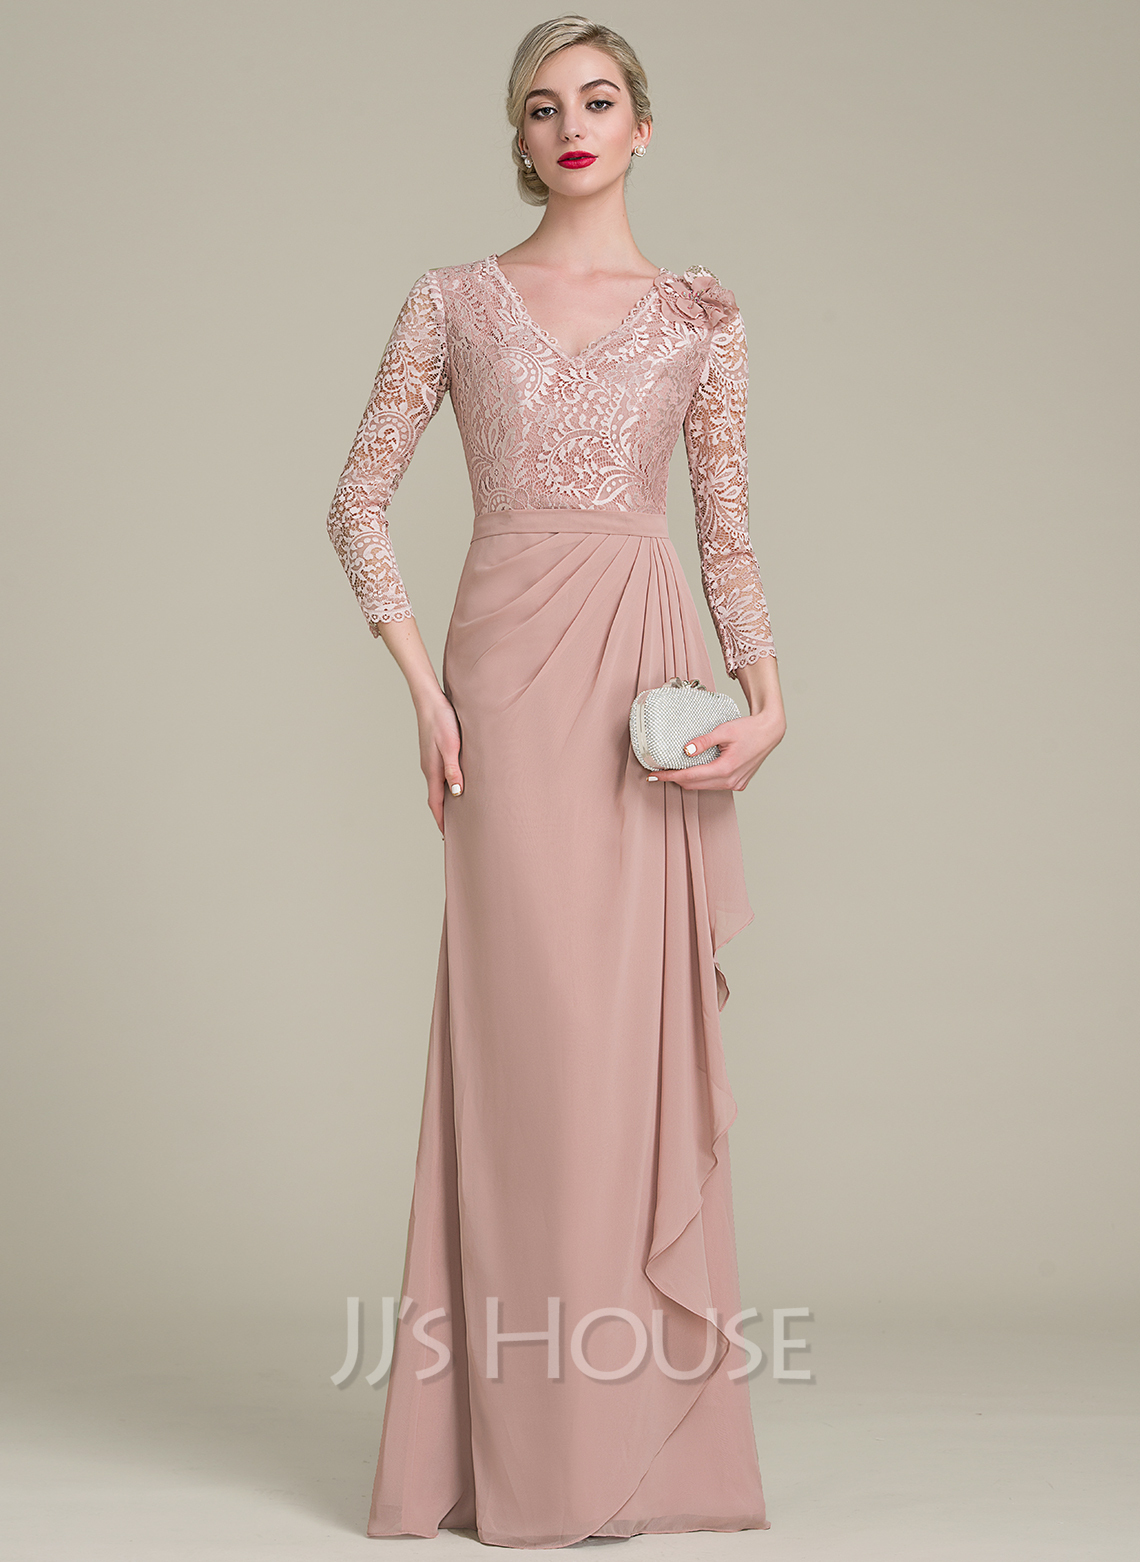 Lace fit and flare dress mother of the bride